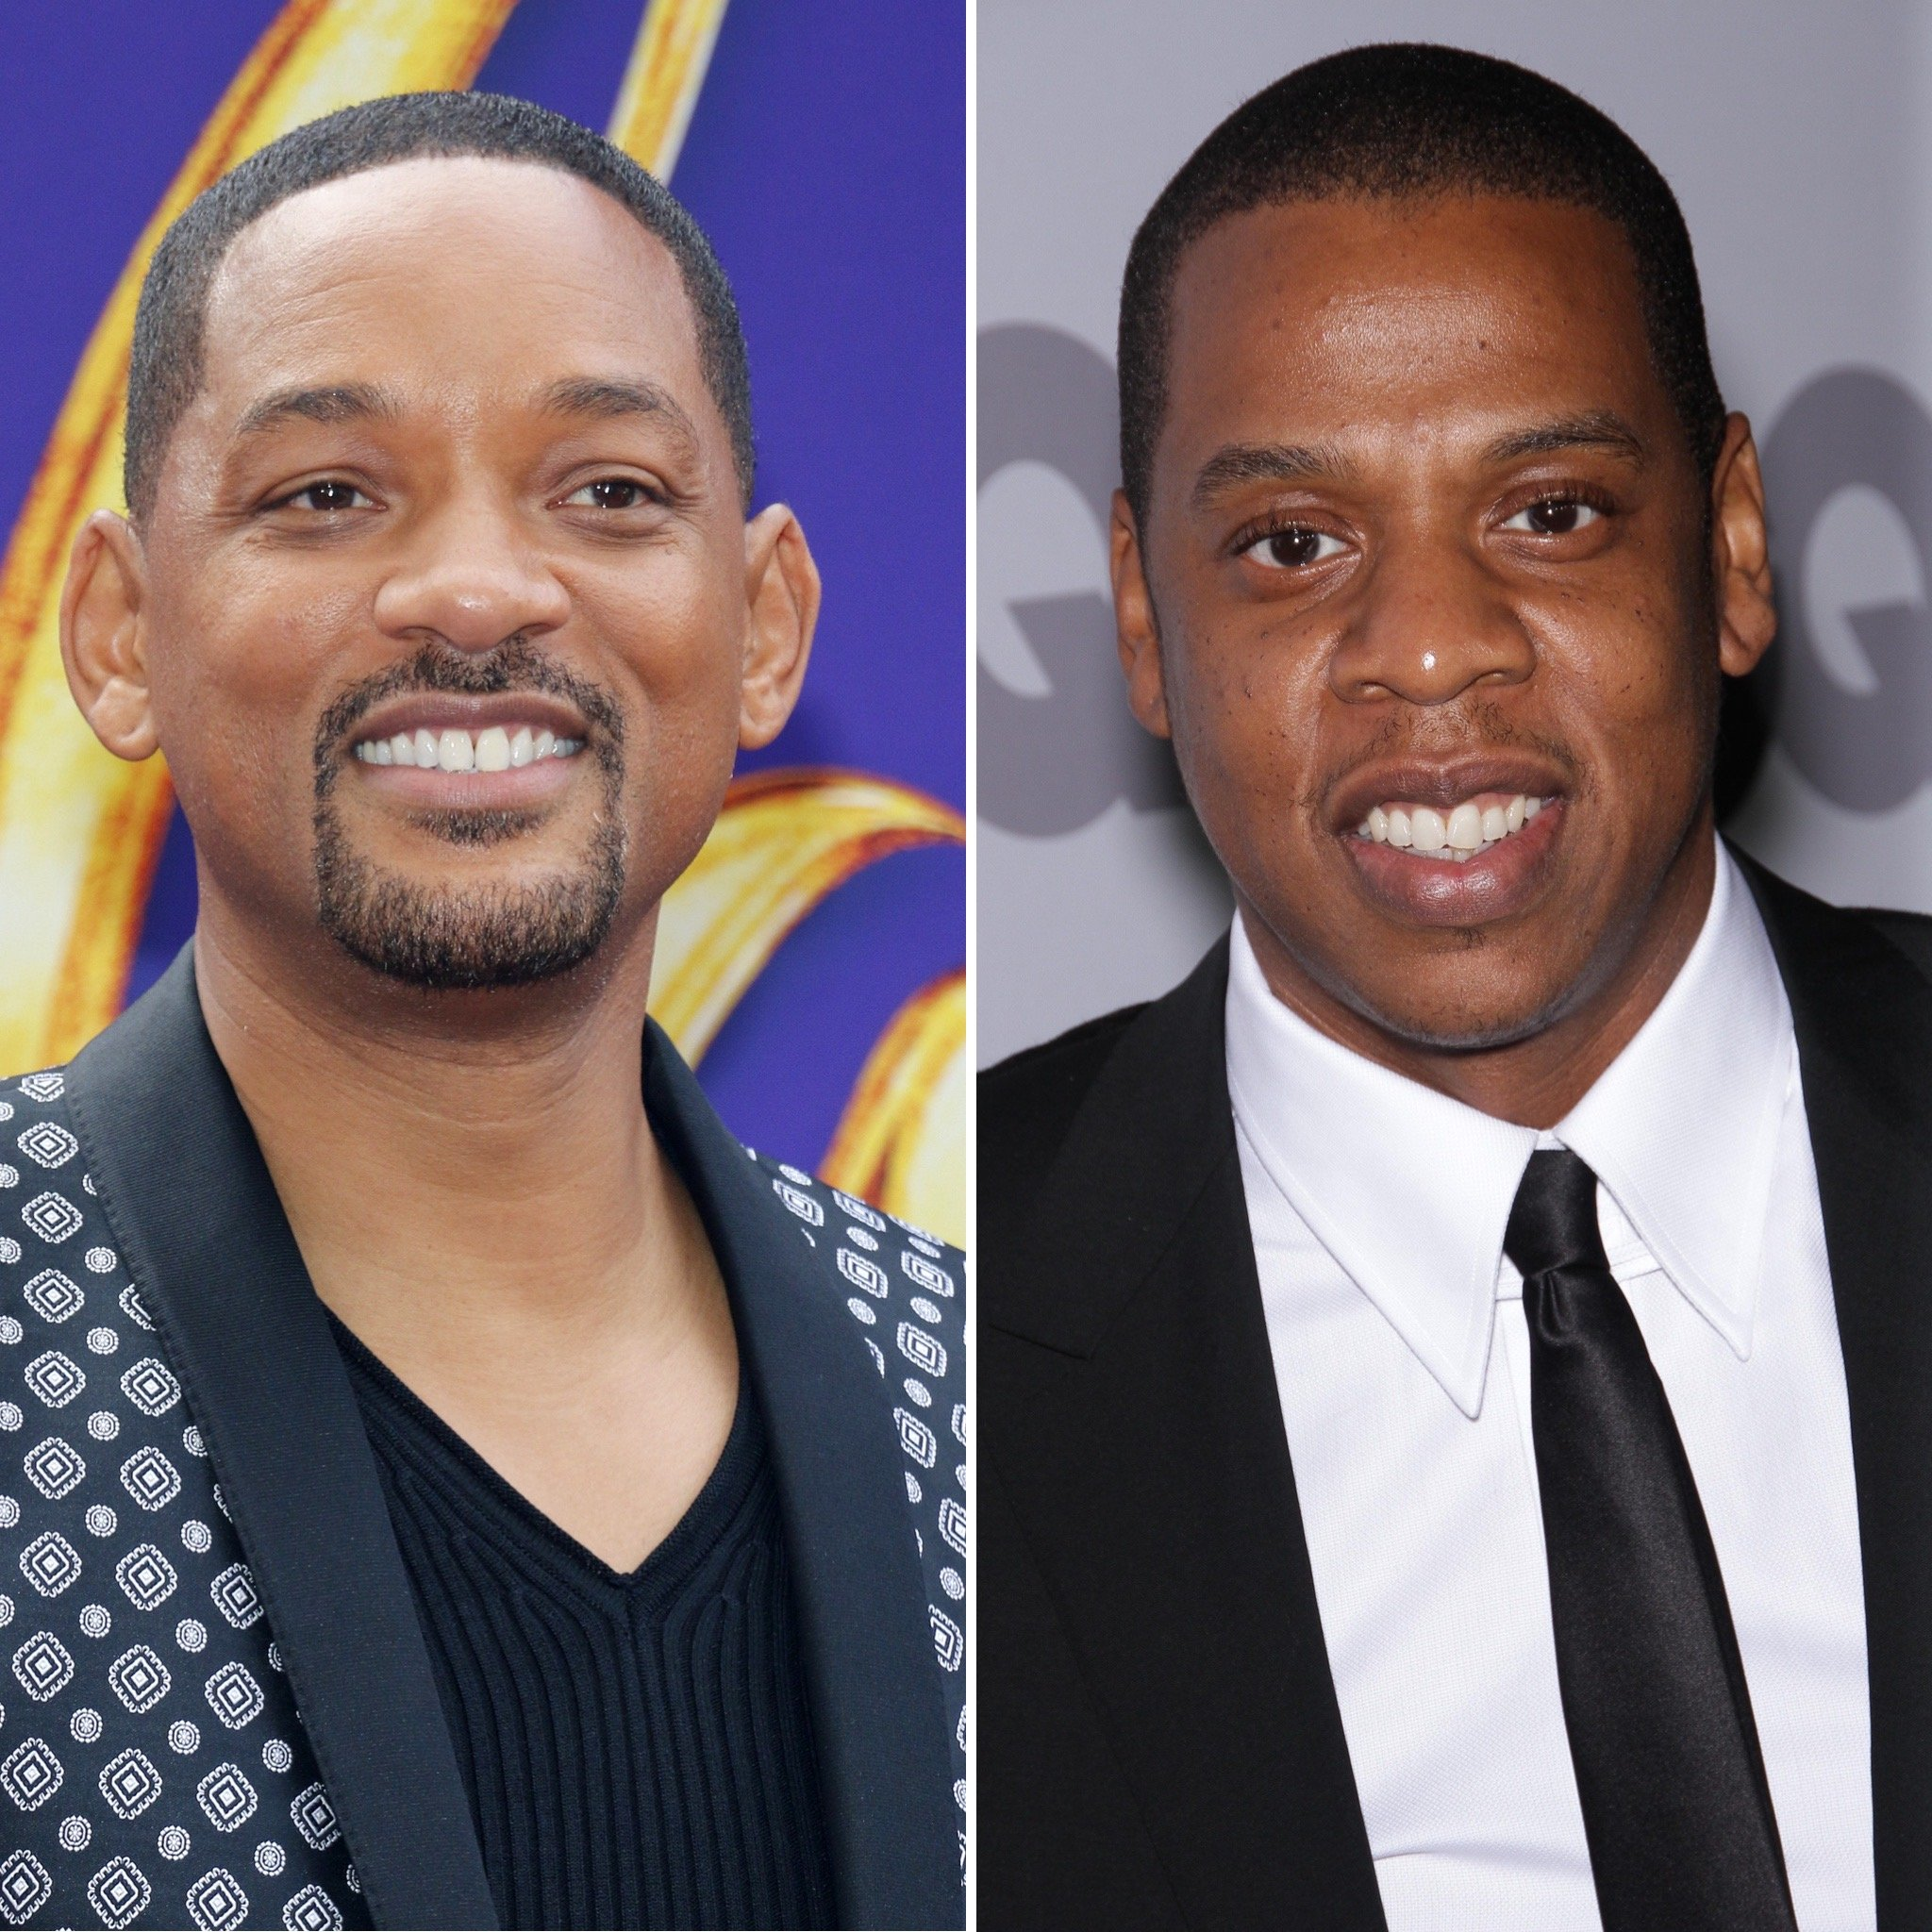 Will Smith and JAY-Z smile at red carpet events.